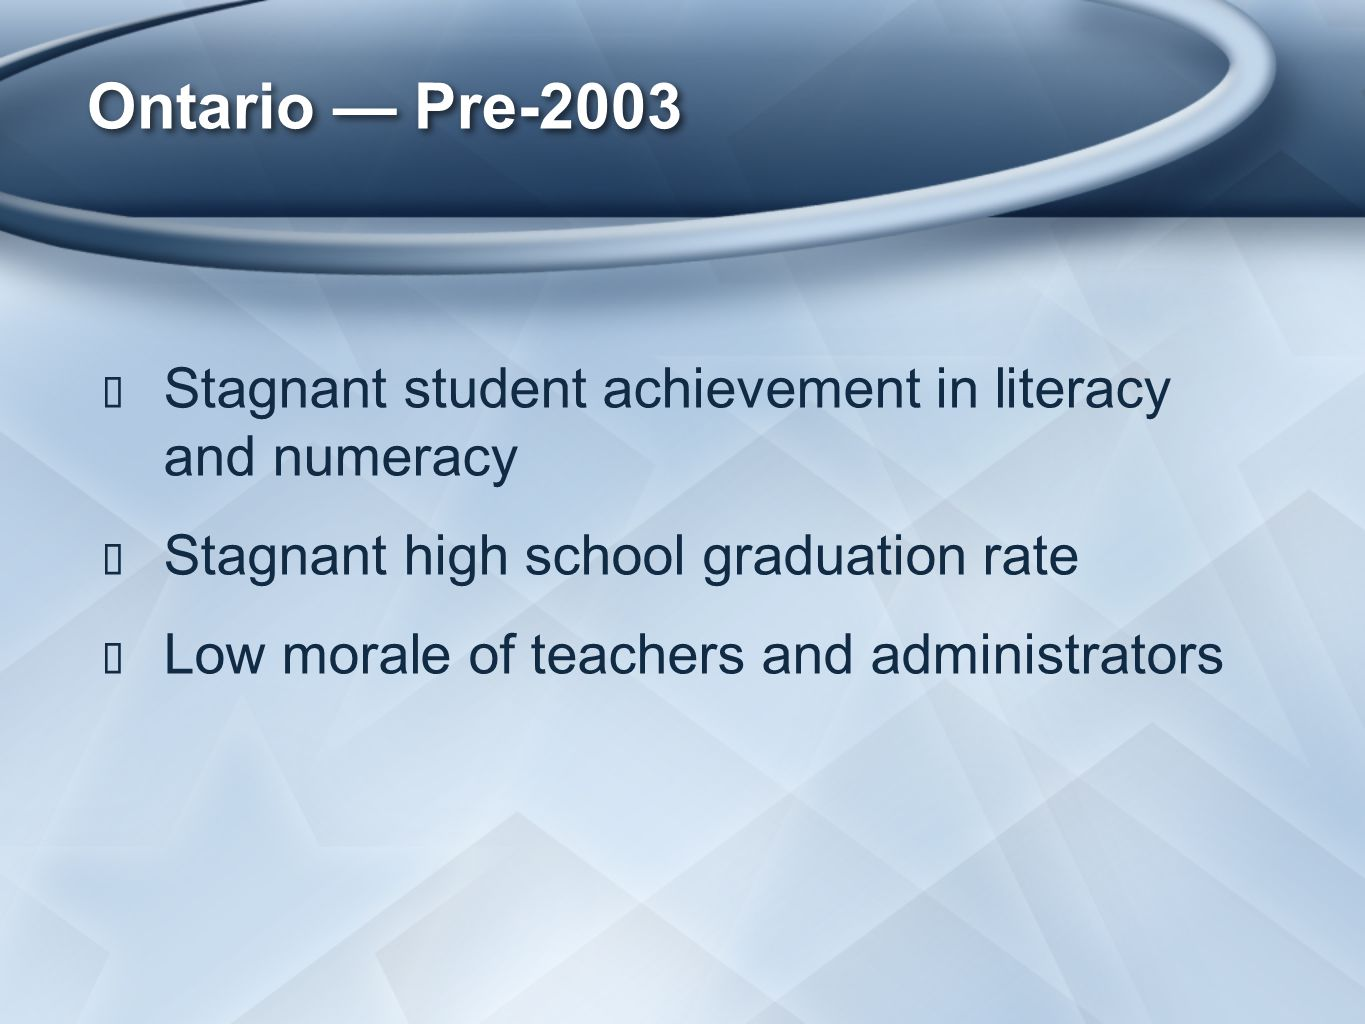 Ontario — Pre-2003 ★ Stagnant student achievement in literacy and numeracy ★ Stagnant high school graduation rate ★ Low morale of teachers and administrators